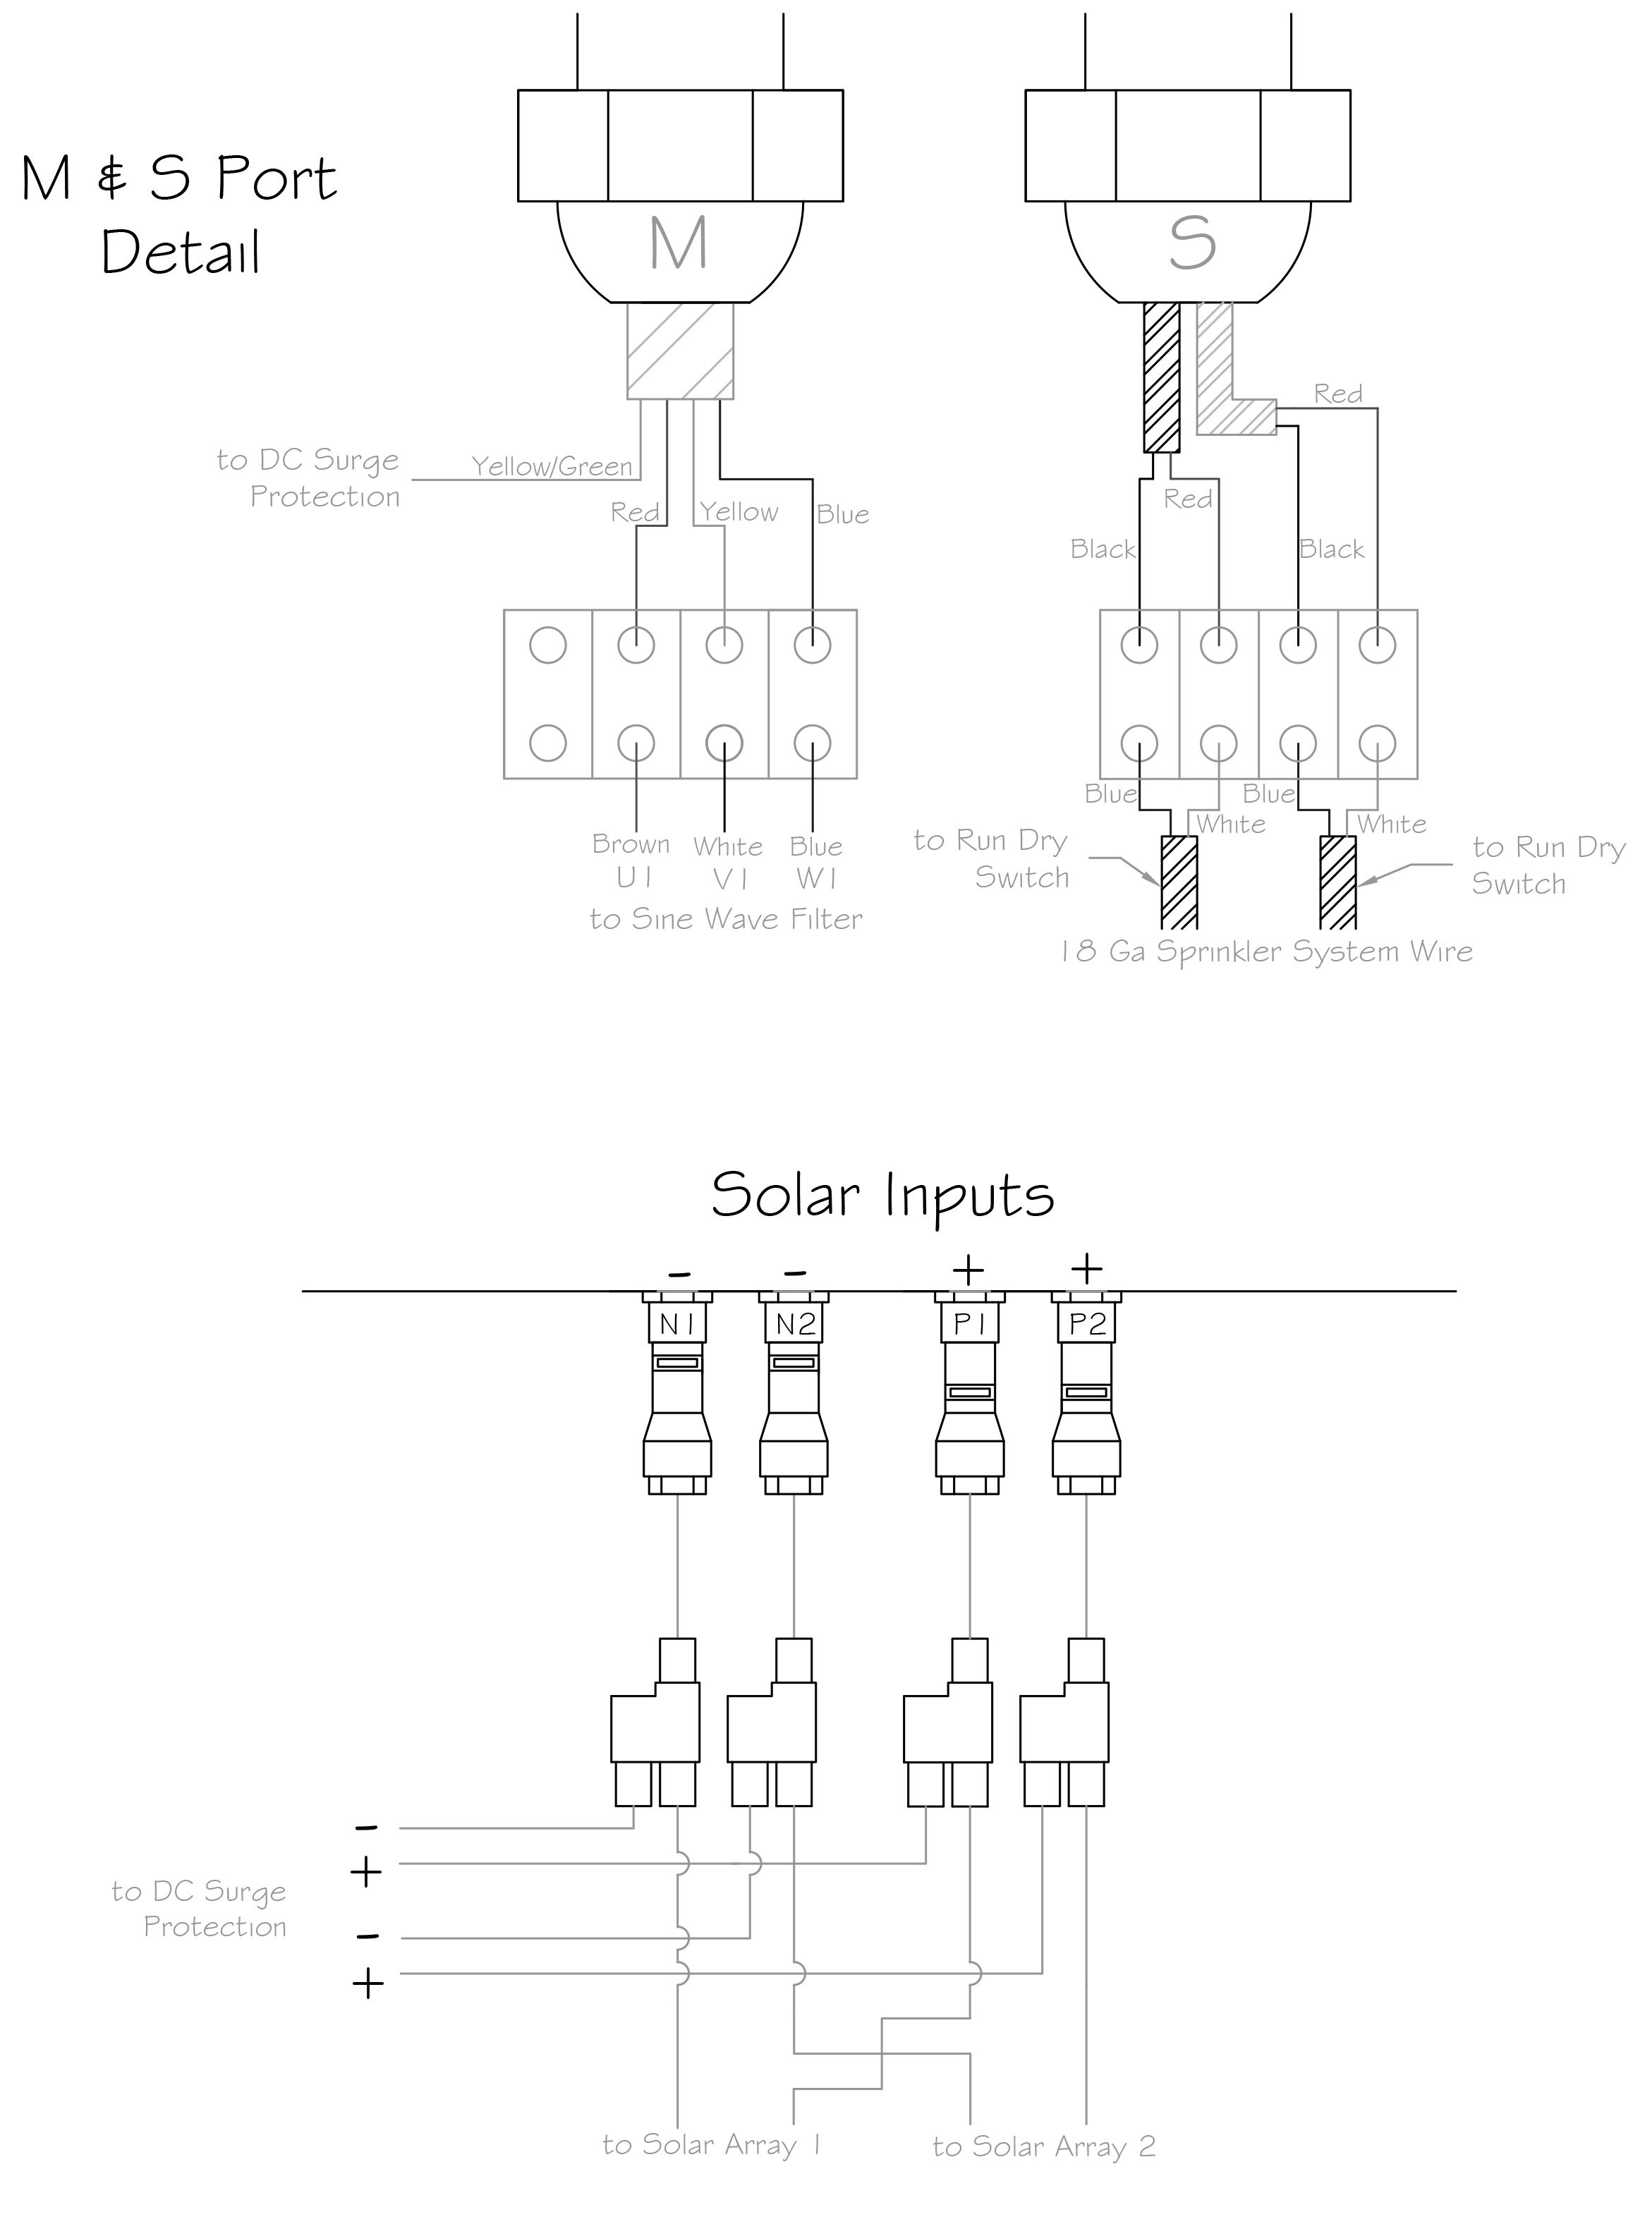 Actual electrical engineering design for one of our difficult projects in mount paka kenya